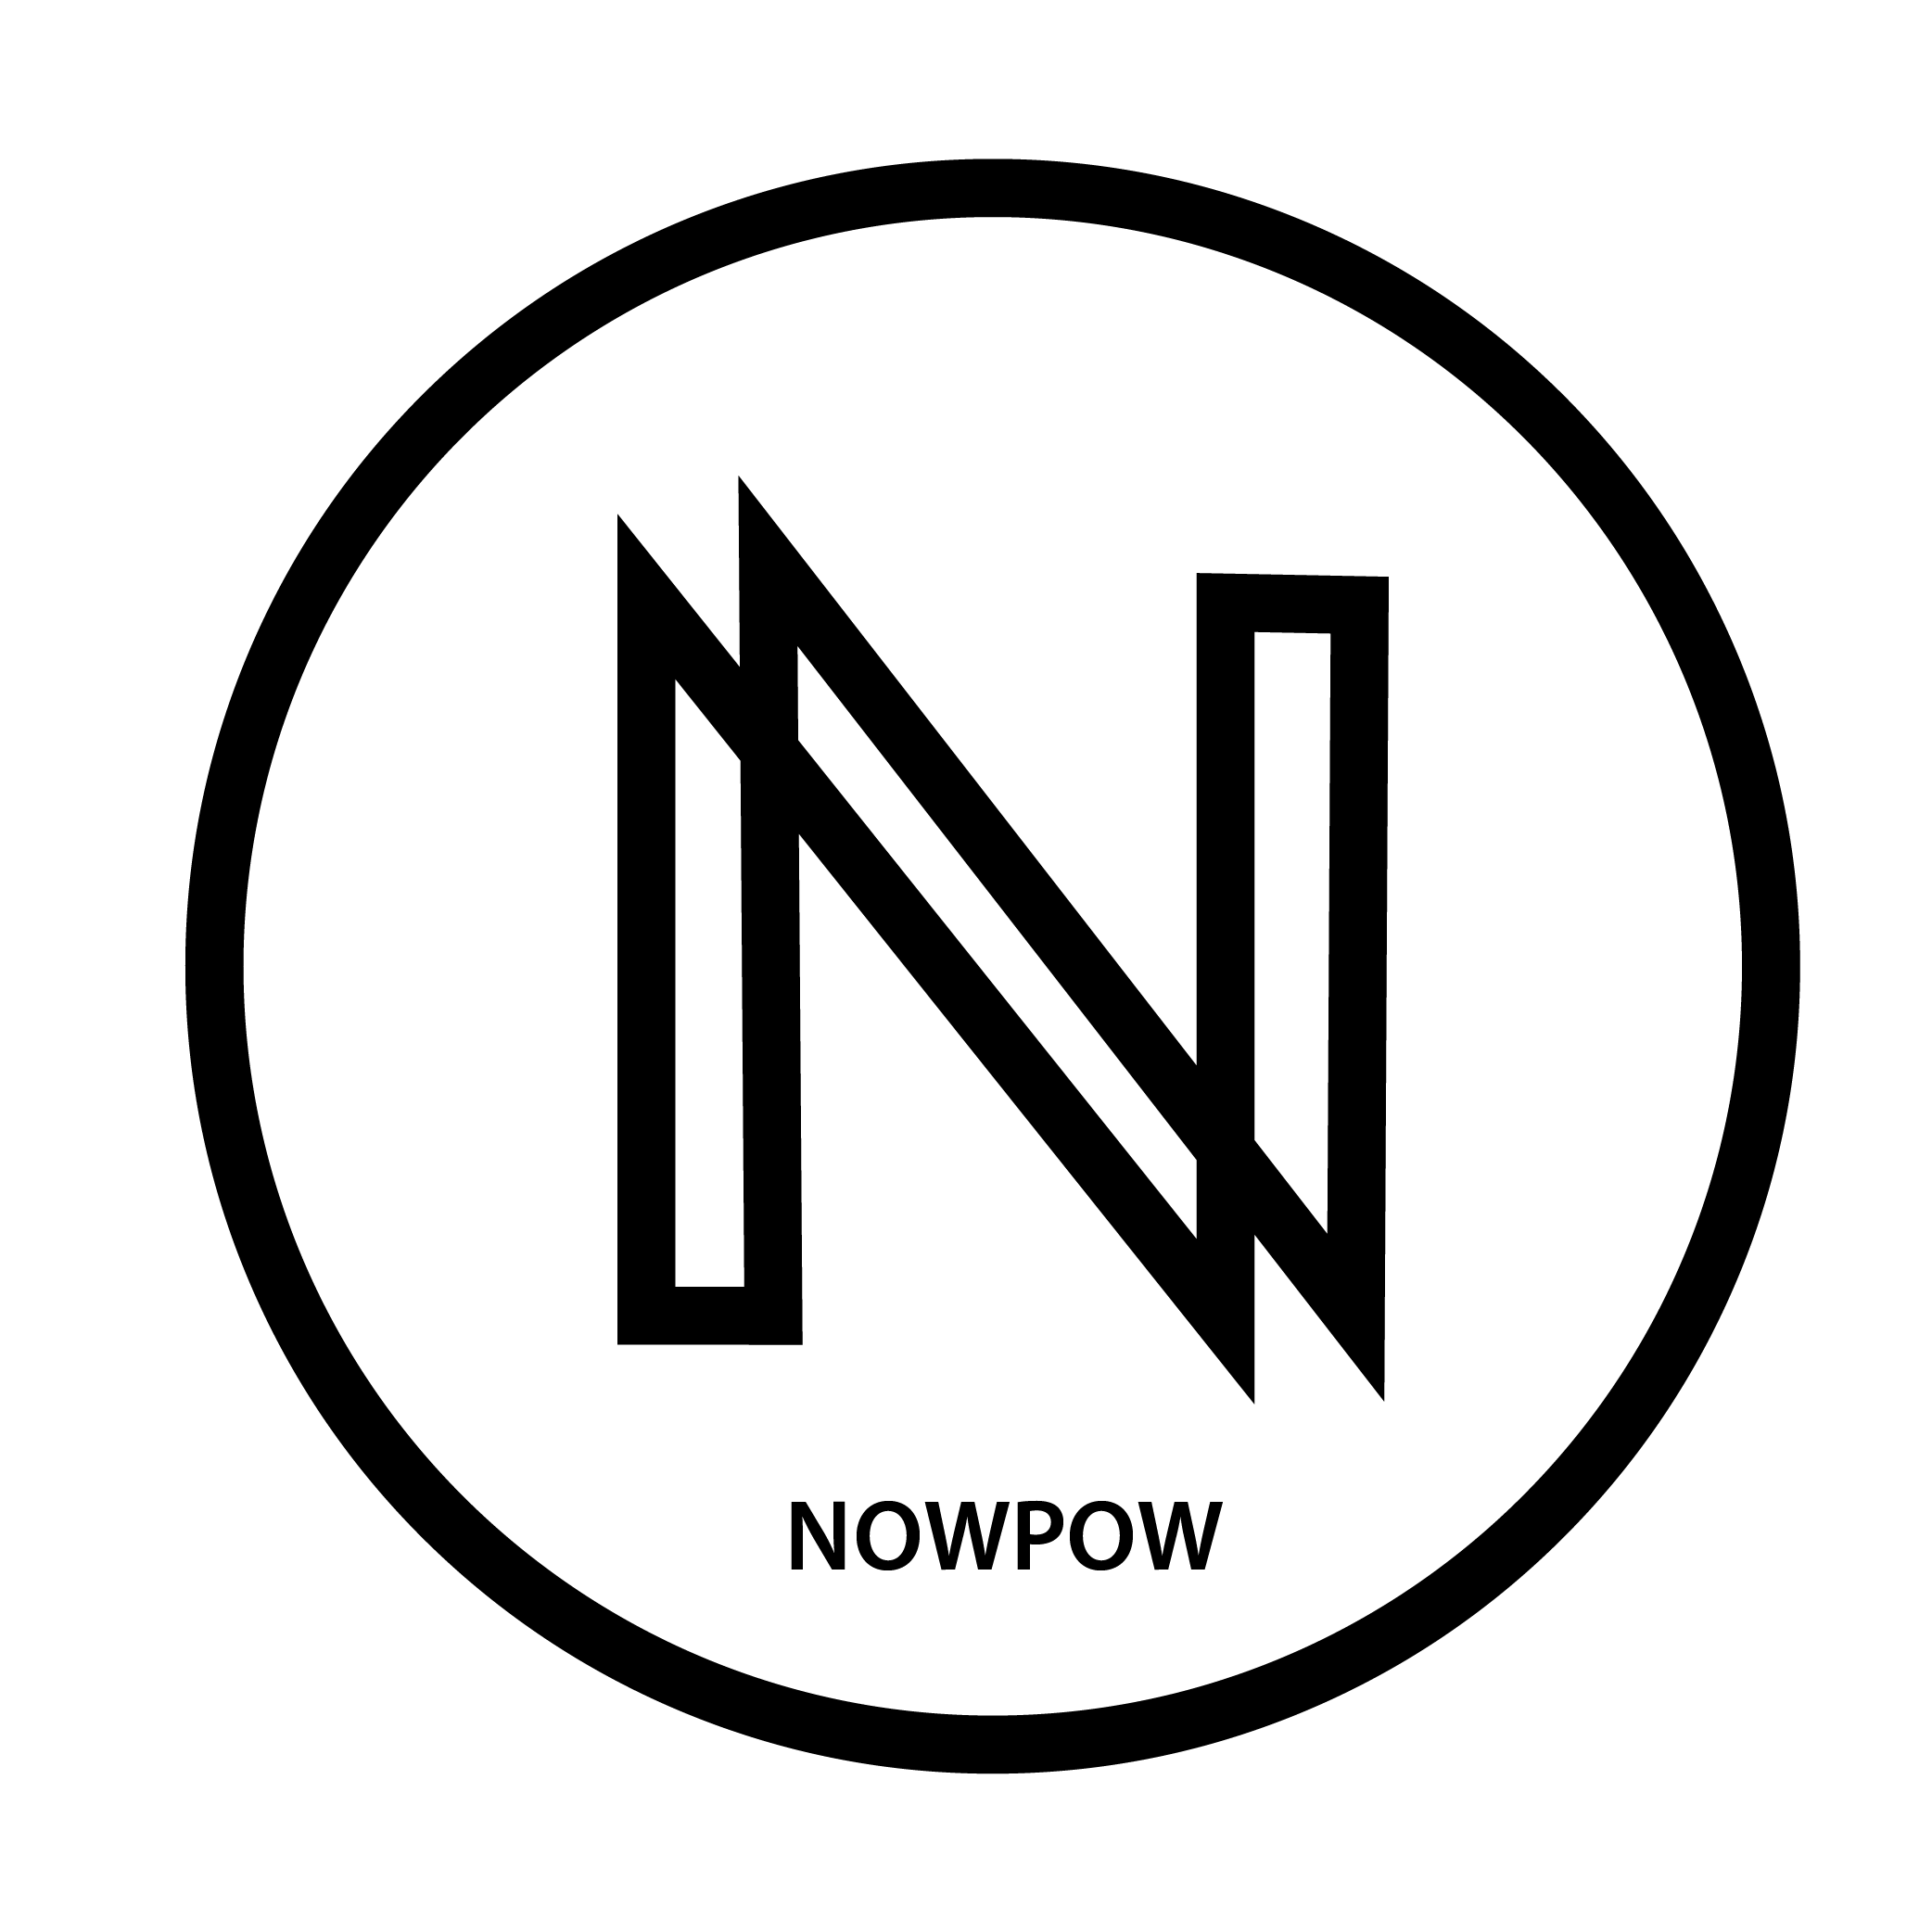 NowPow - your innovation academy